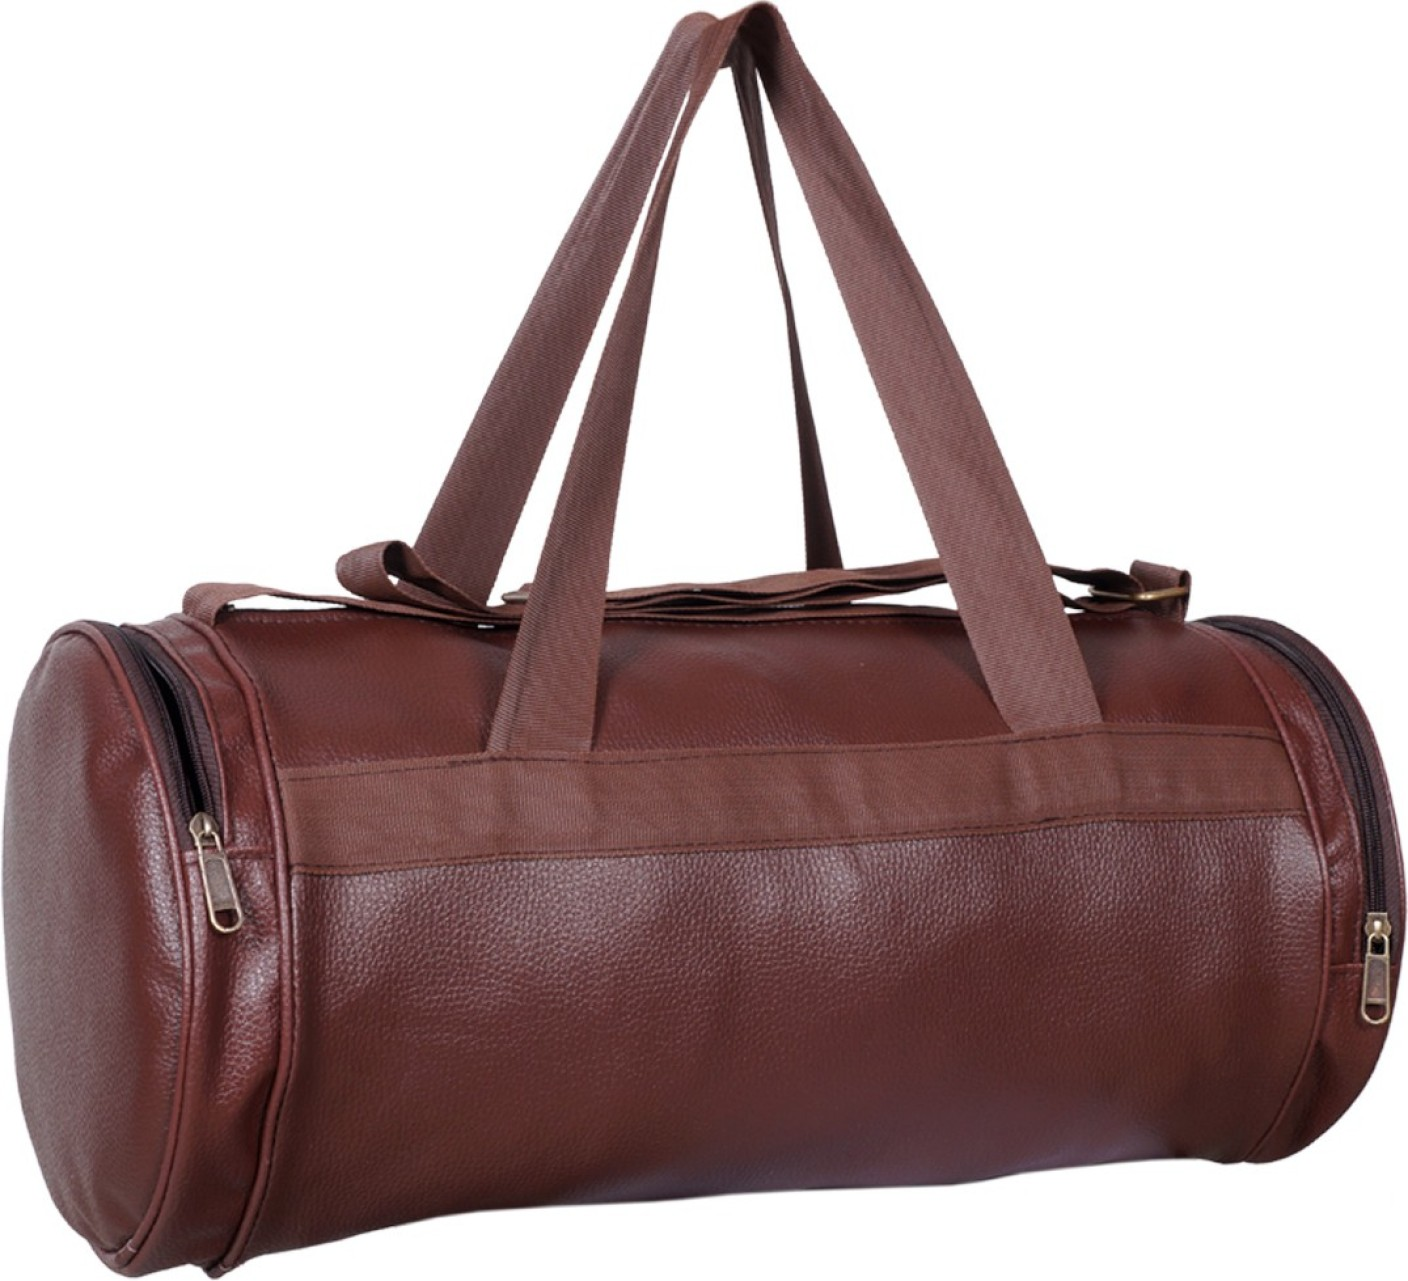 Gym Bag Flipkart: Dee Mannequin Antique Leather Rite Gym Bag